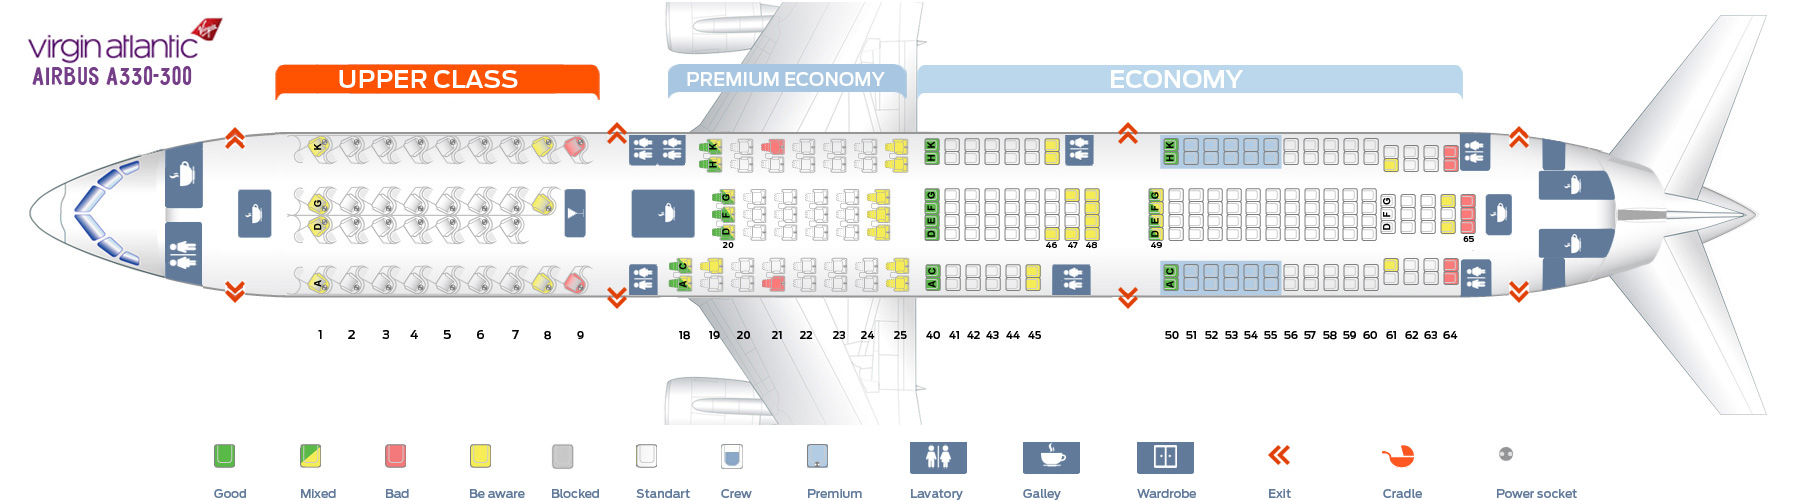 Seat map Airbus A330-300 Virgin Atlantic. Best seats in plane - photo#45